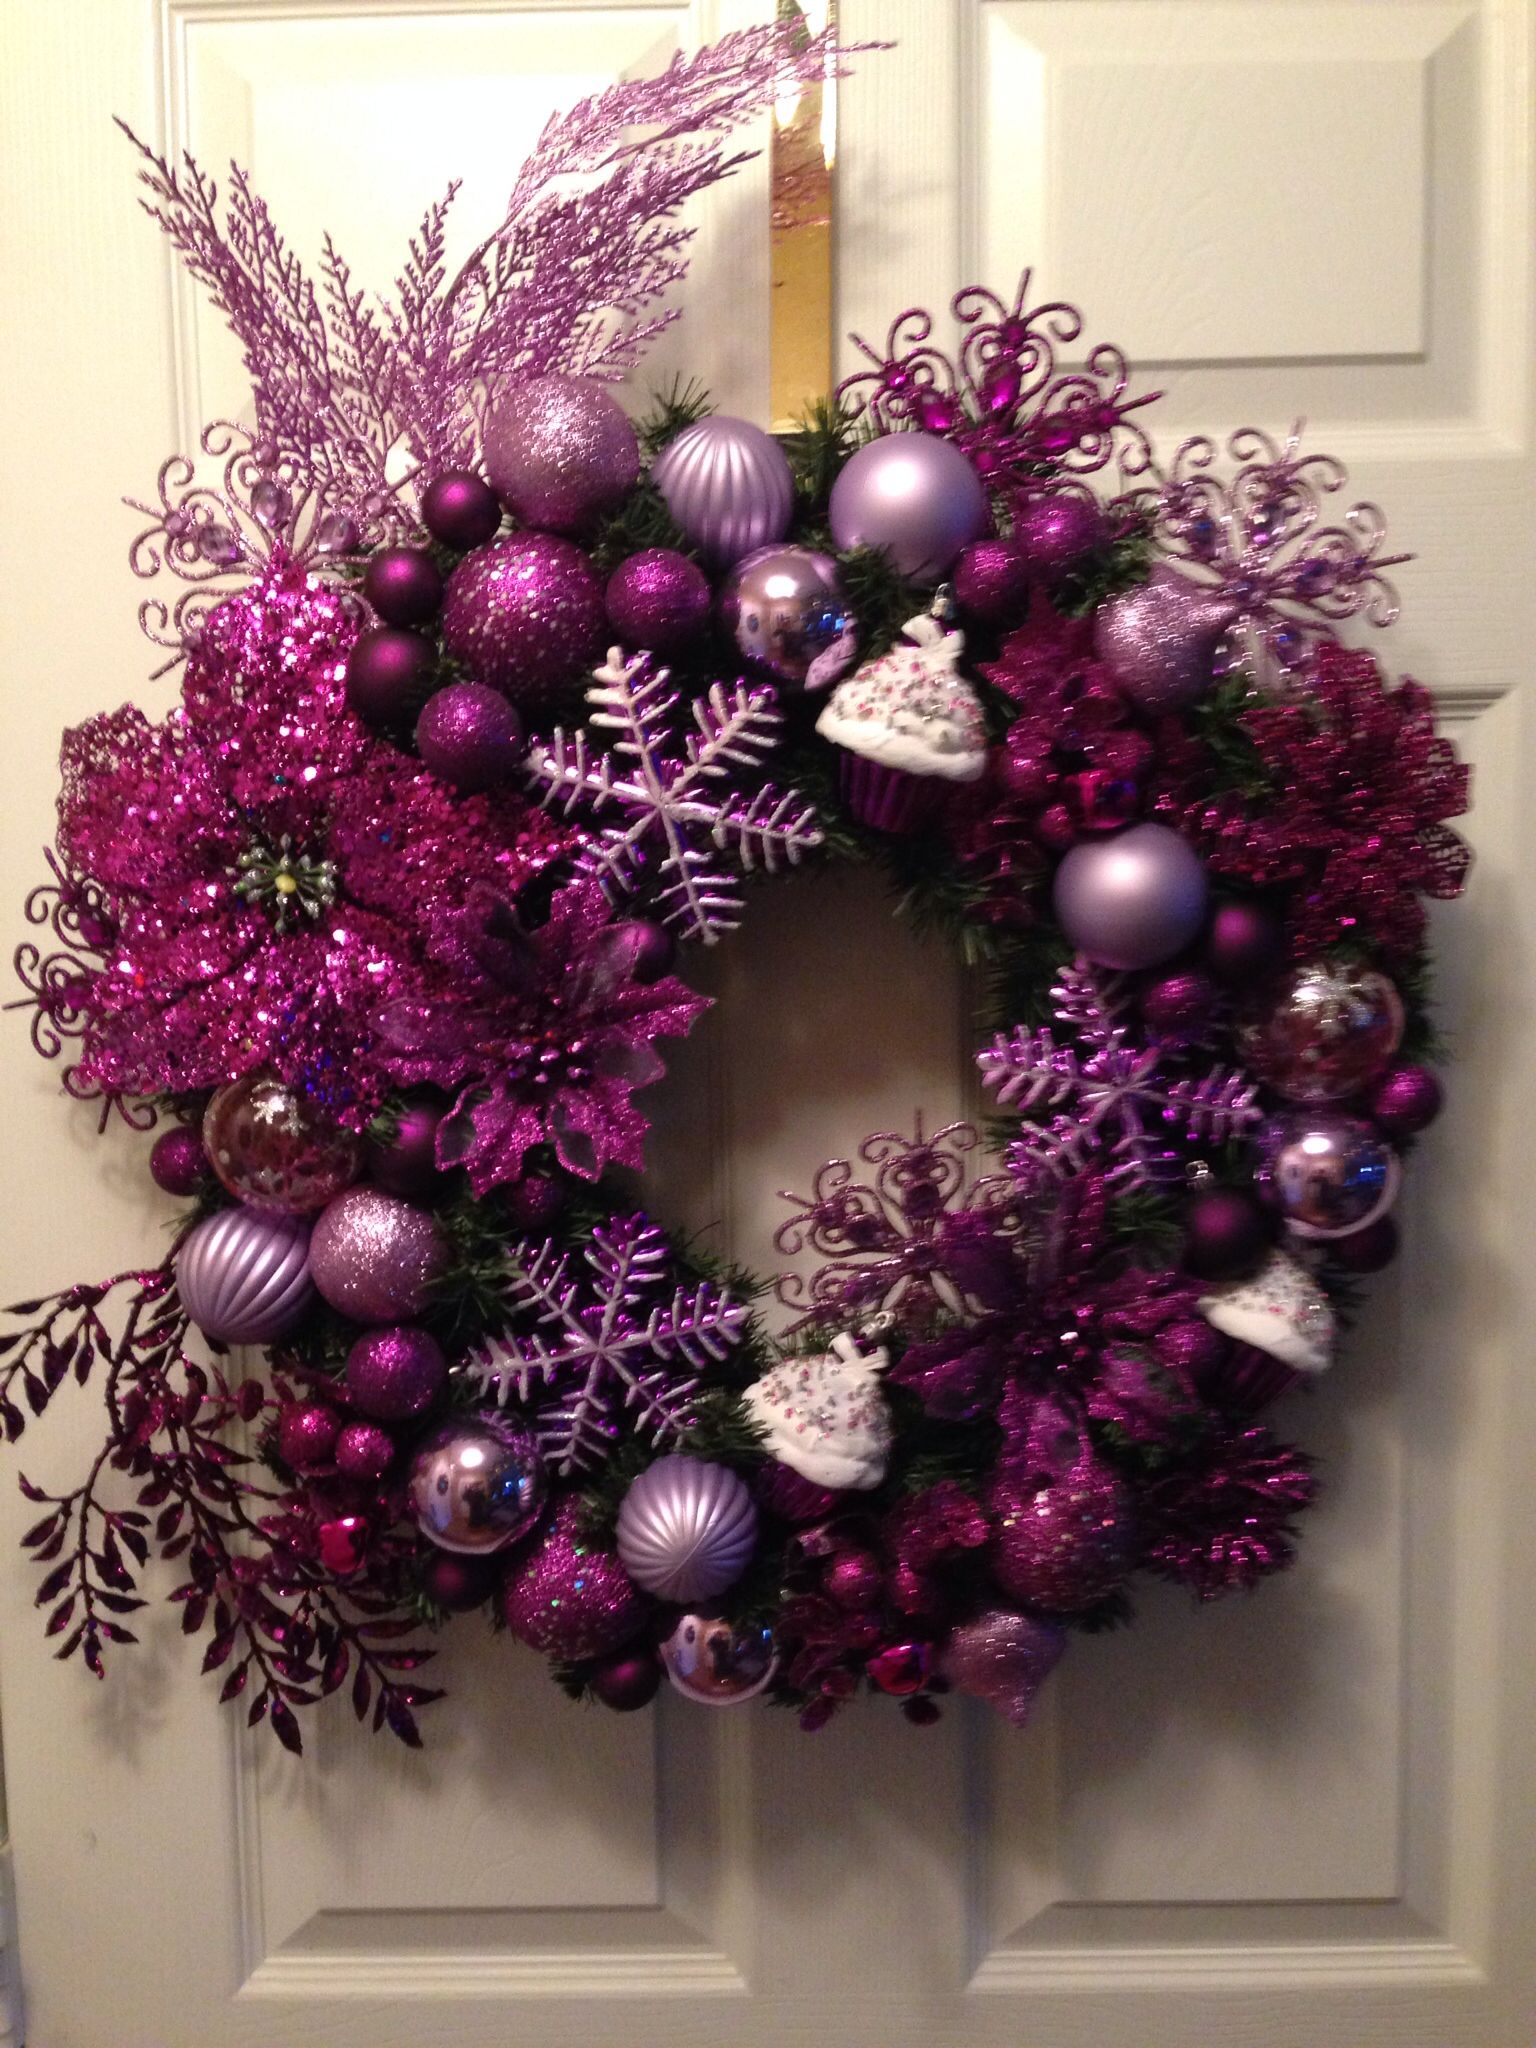 made this purple lavender snowflake n cupcakes christmas wreath 2dayall decorations from ww n the purple poinsettia is from family dollarthis is for - Family Dollar Christmas Decorations